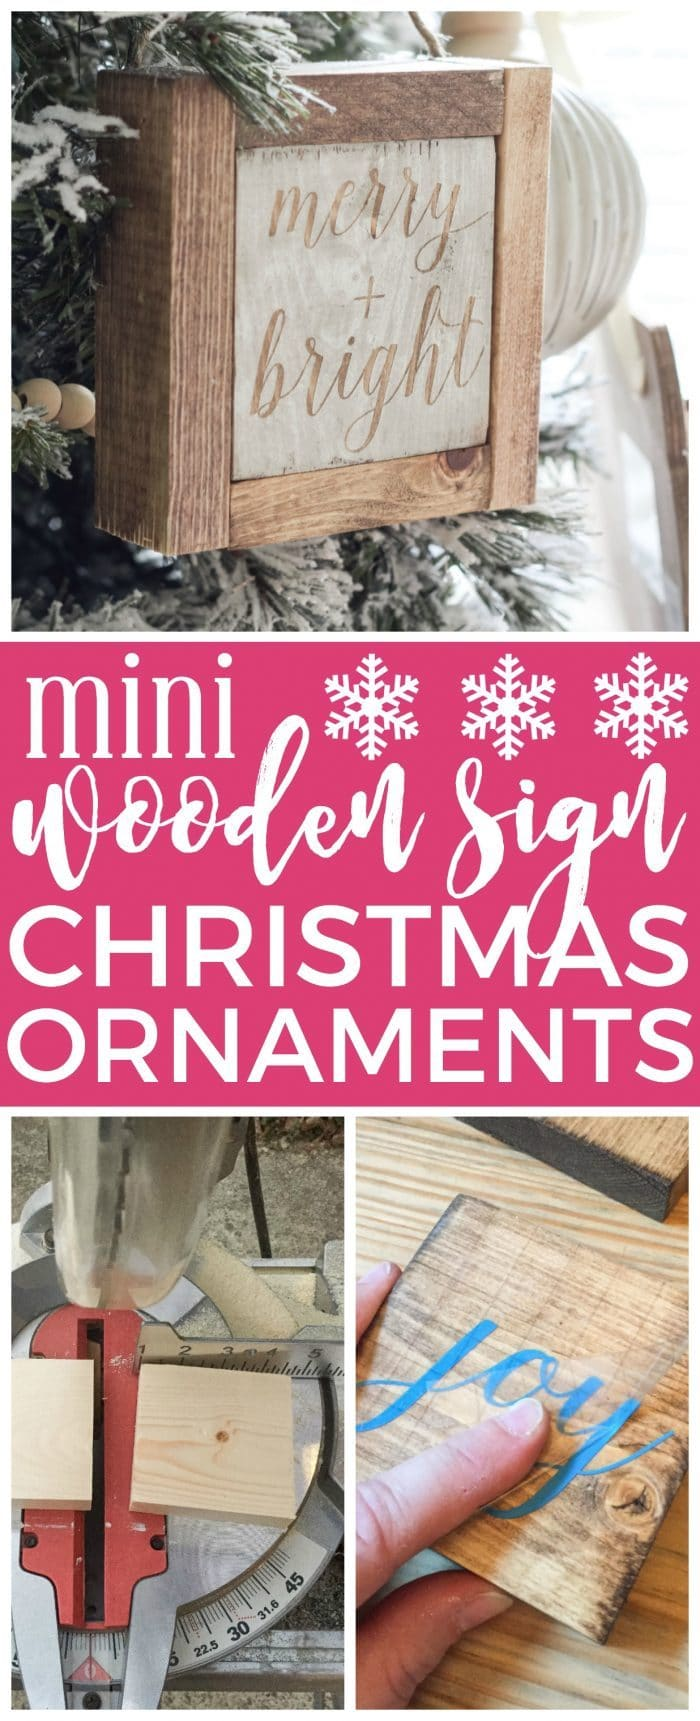 Mini Wooden Sign Christmas Ornaments | Create a simple wooden sign with a cute saying and create a rustic, farmhouse Christmas look for cheap!